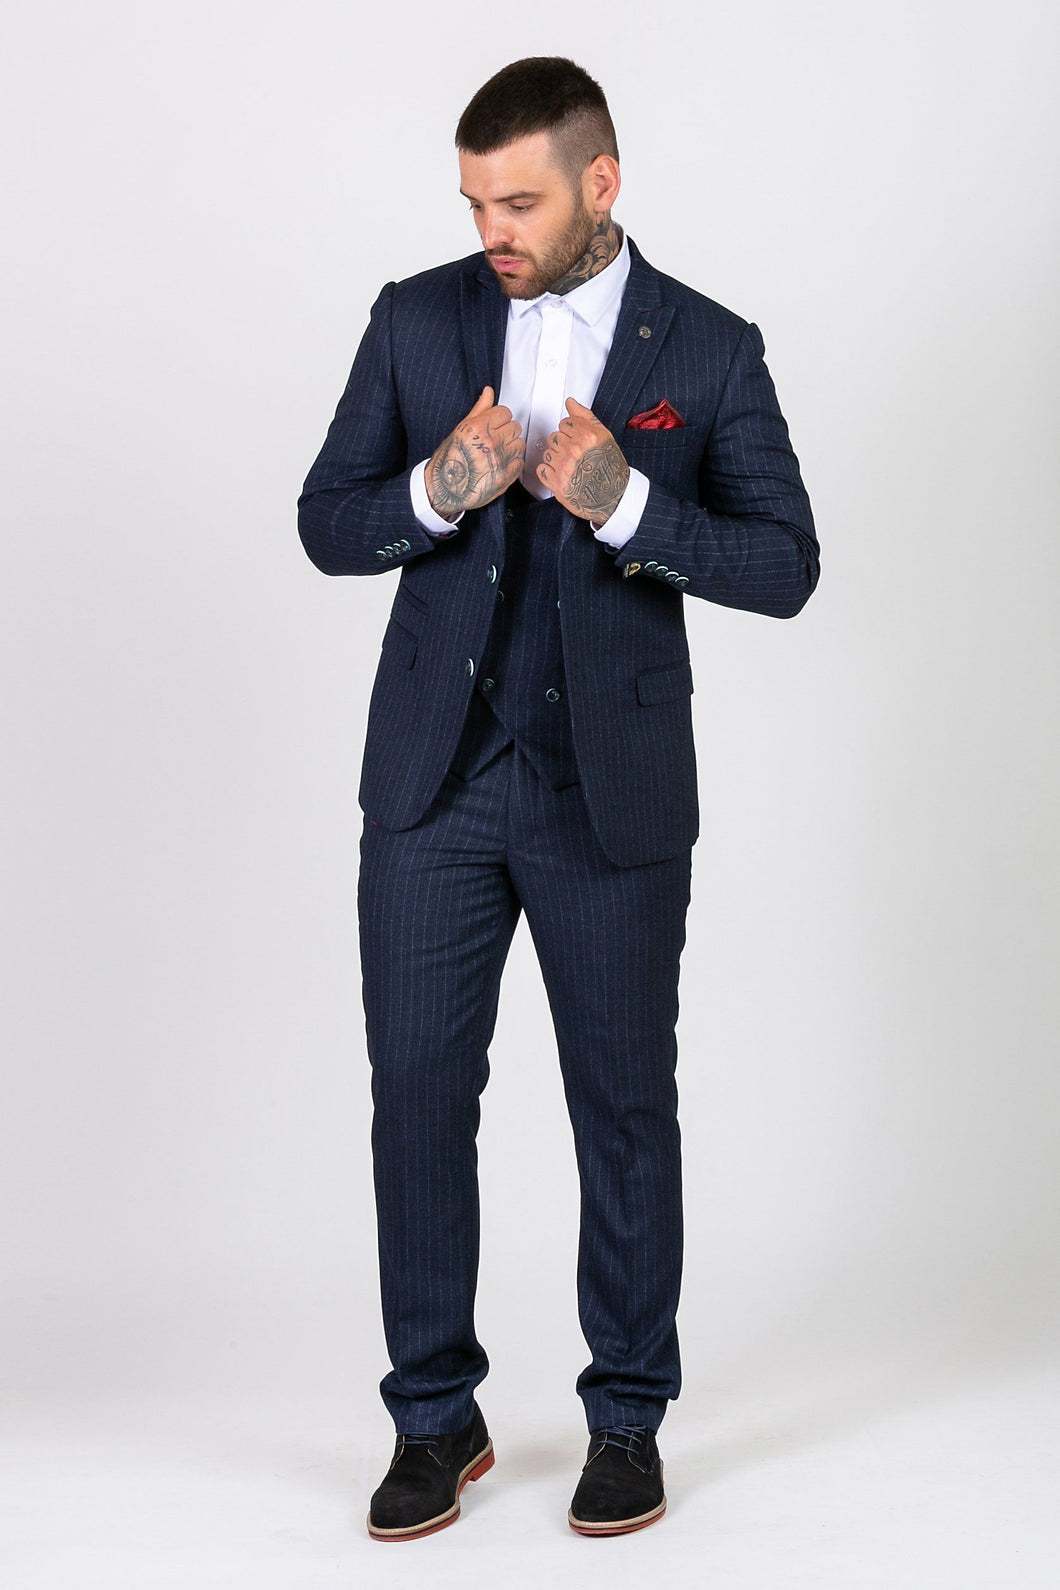 Marc Darcy: LEWIS - Navy Blue Pinstripe Suit with Double Breasted Waistcoat - Gilt Edged